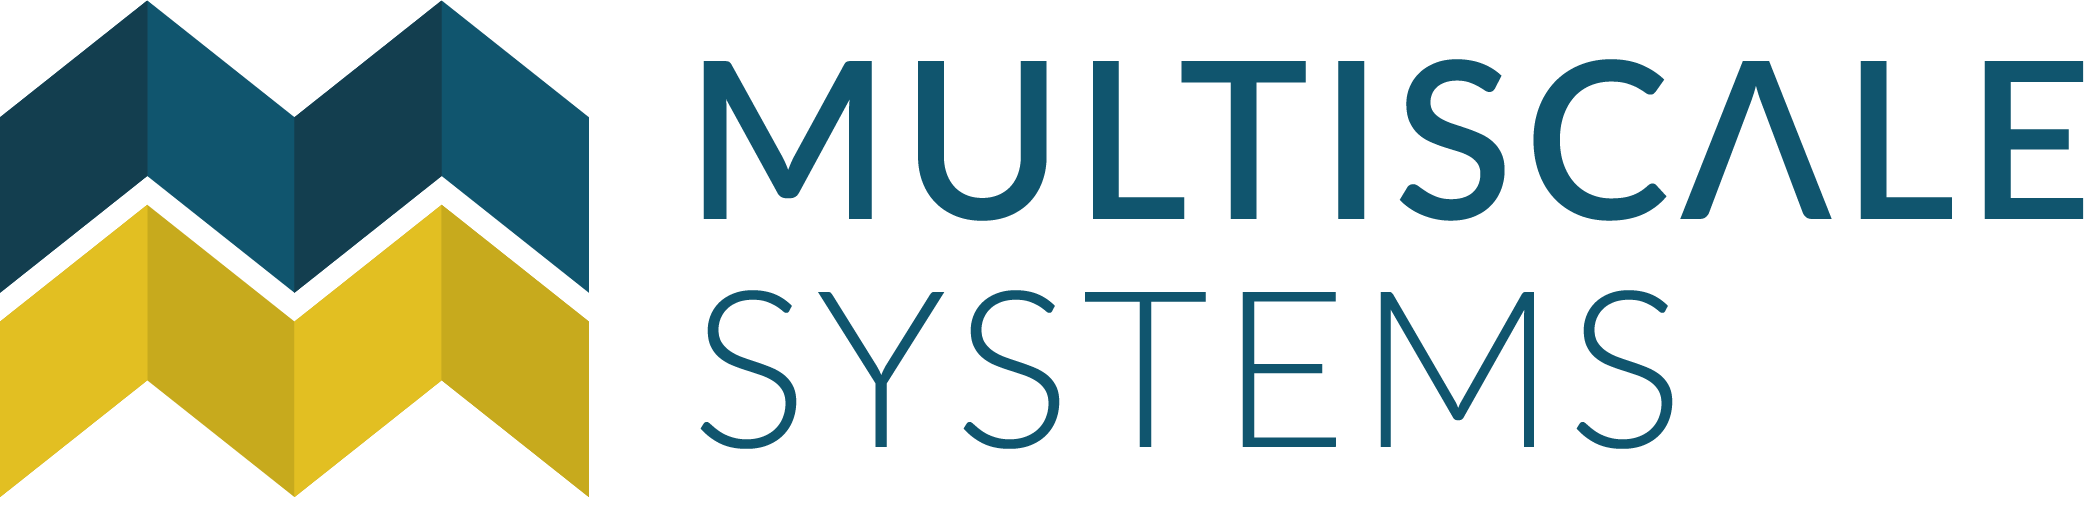 Multiscale Systems logo